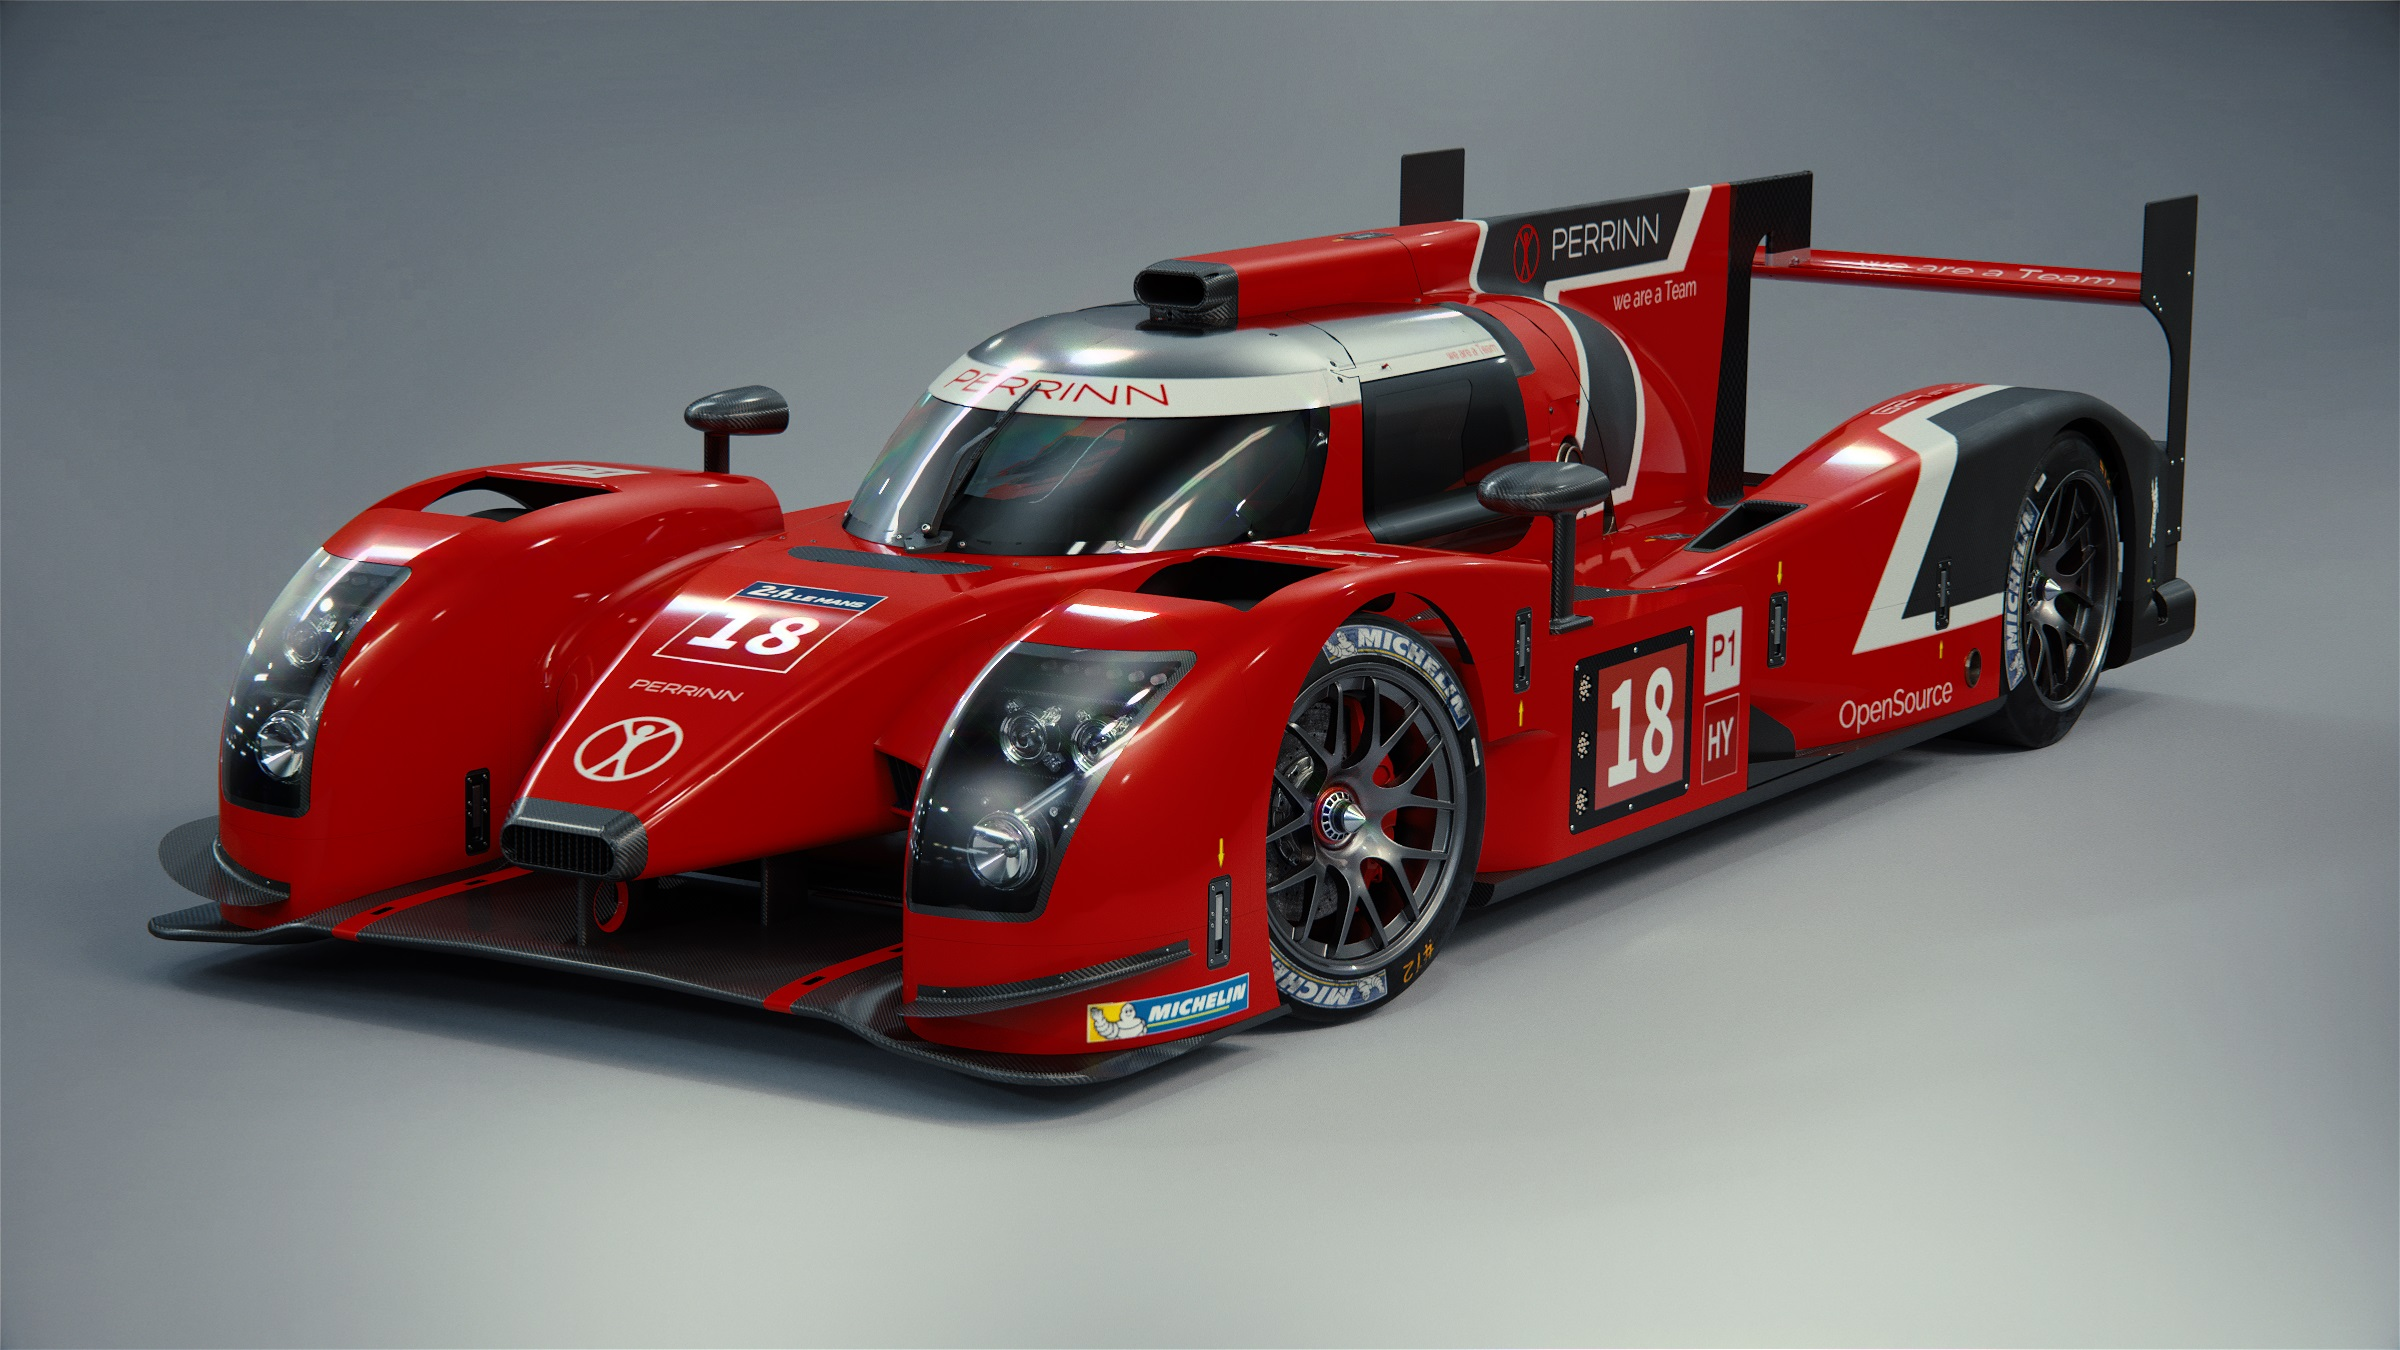 Great ... Company PERRINN Has Announced That It Has Received The First Order For  A Brace Of Its New LMP1 Car To Race The 2018 FIA World Endurance  Championship.